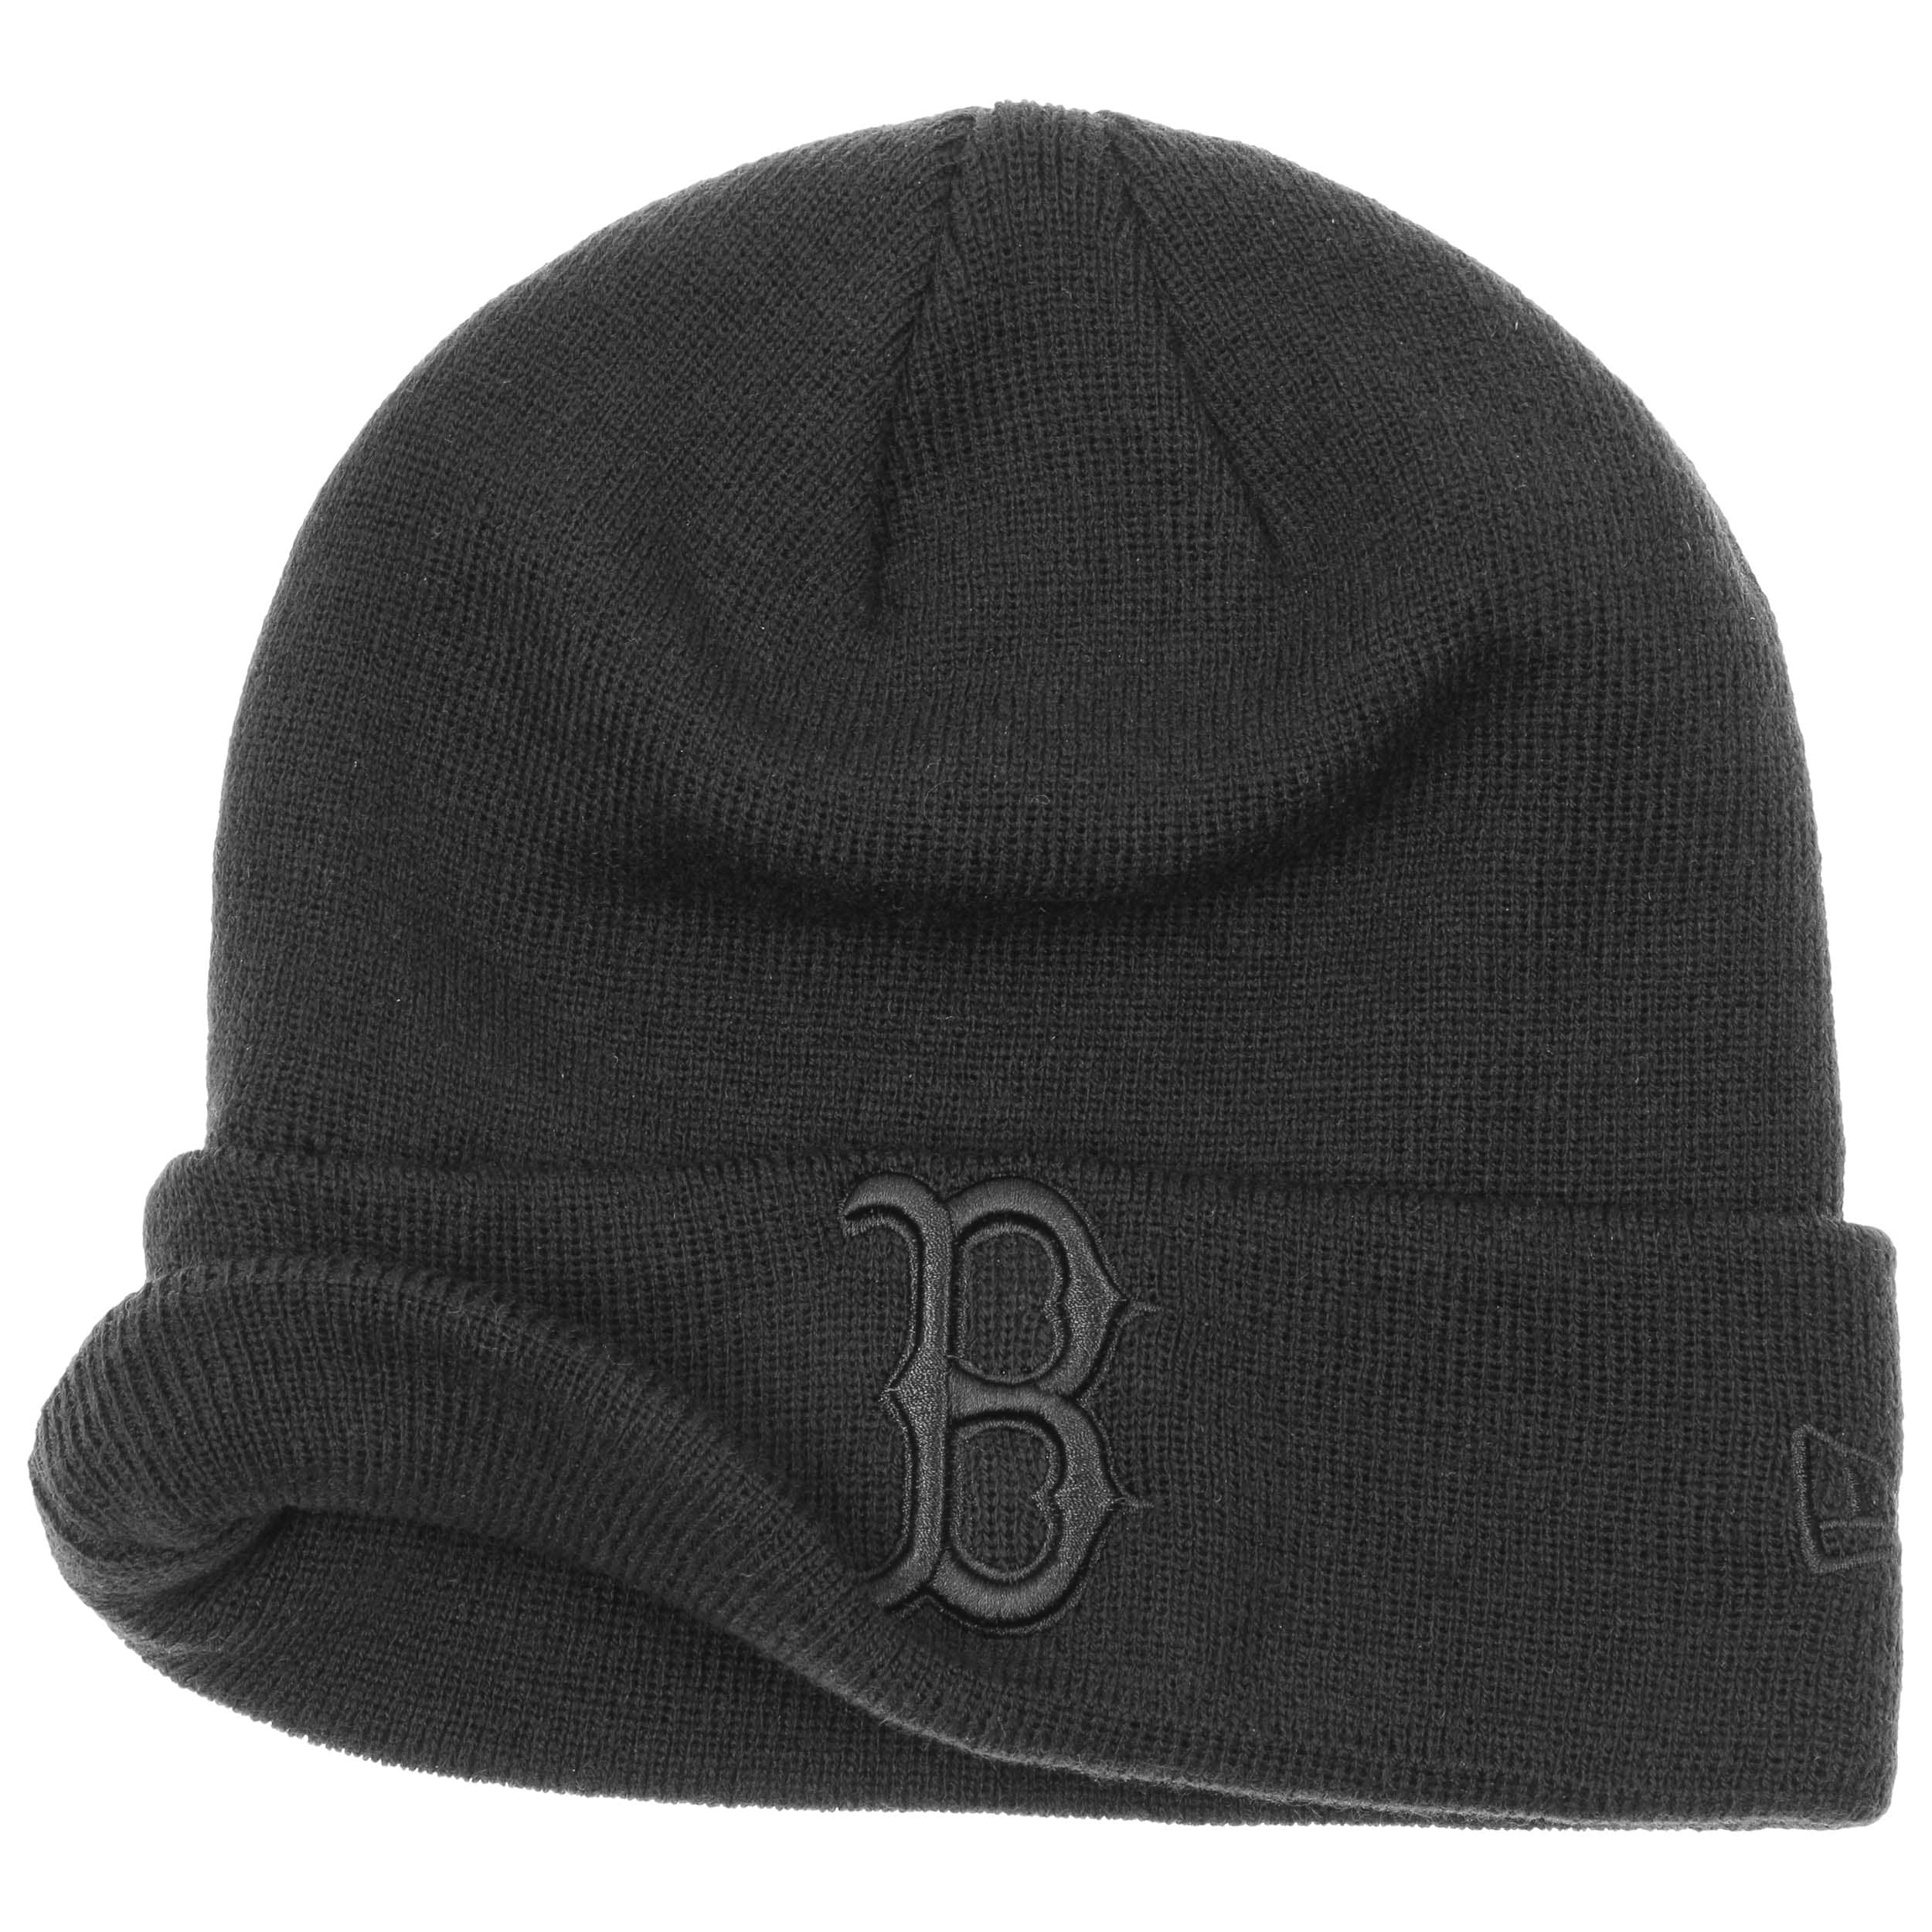 6f7856d9c49 Red Sox Beanie with Cuff by New Era - black 1 ...